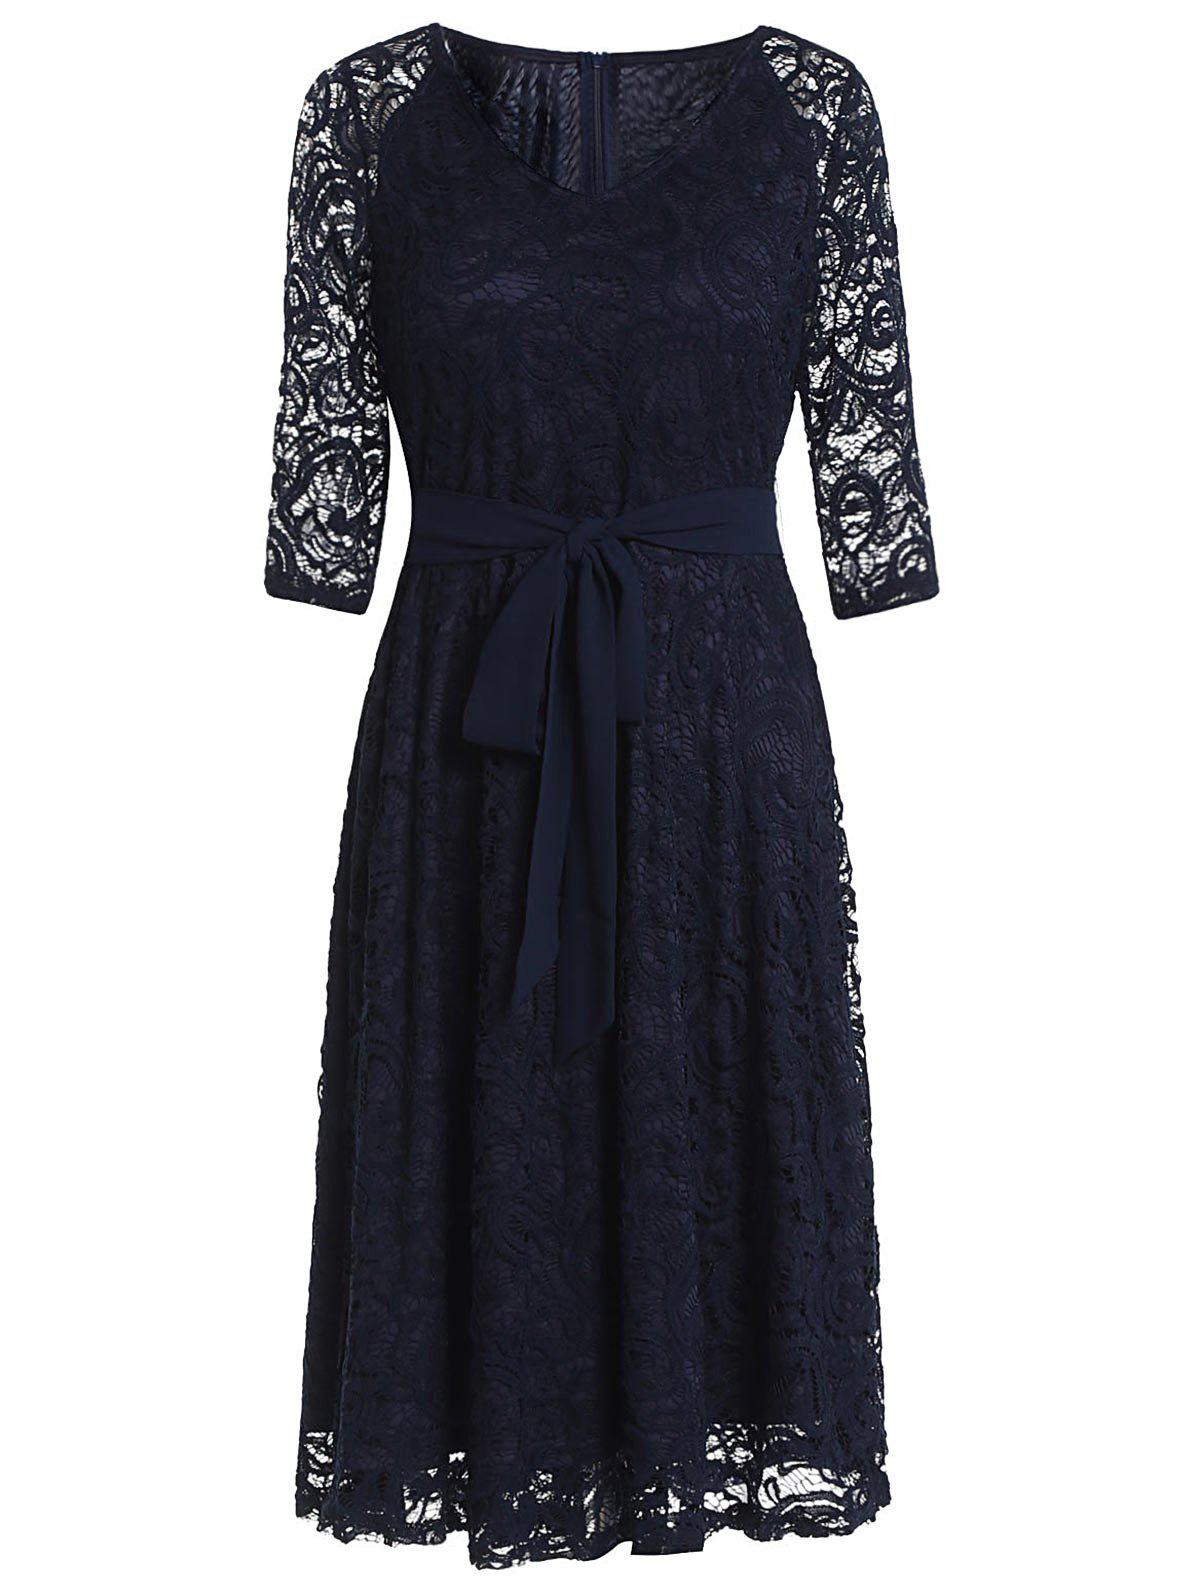 Discount Vintage Lace High Waist Dress